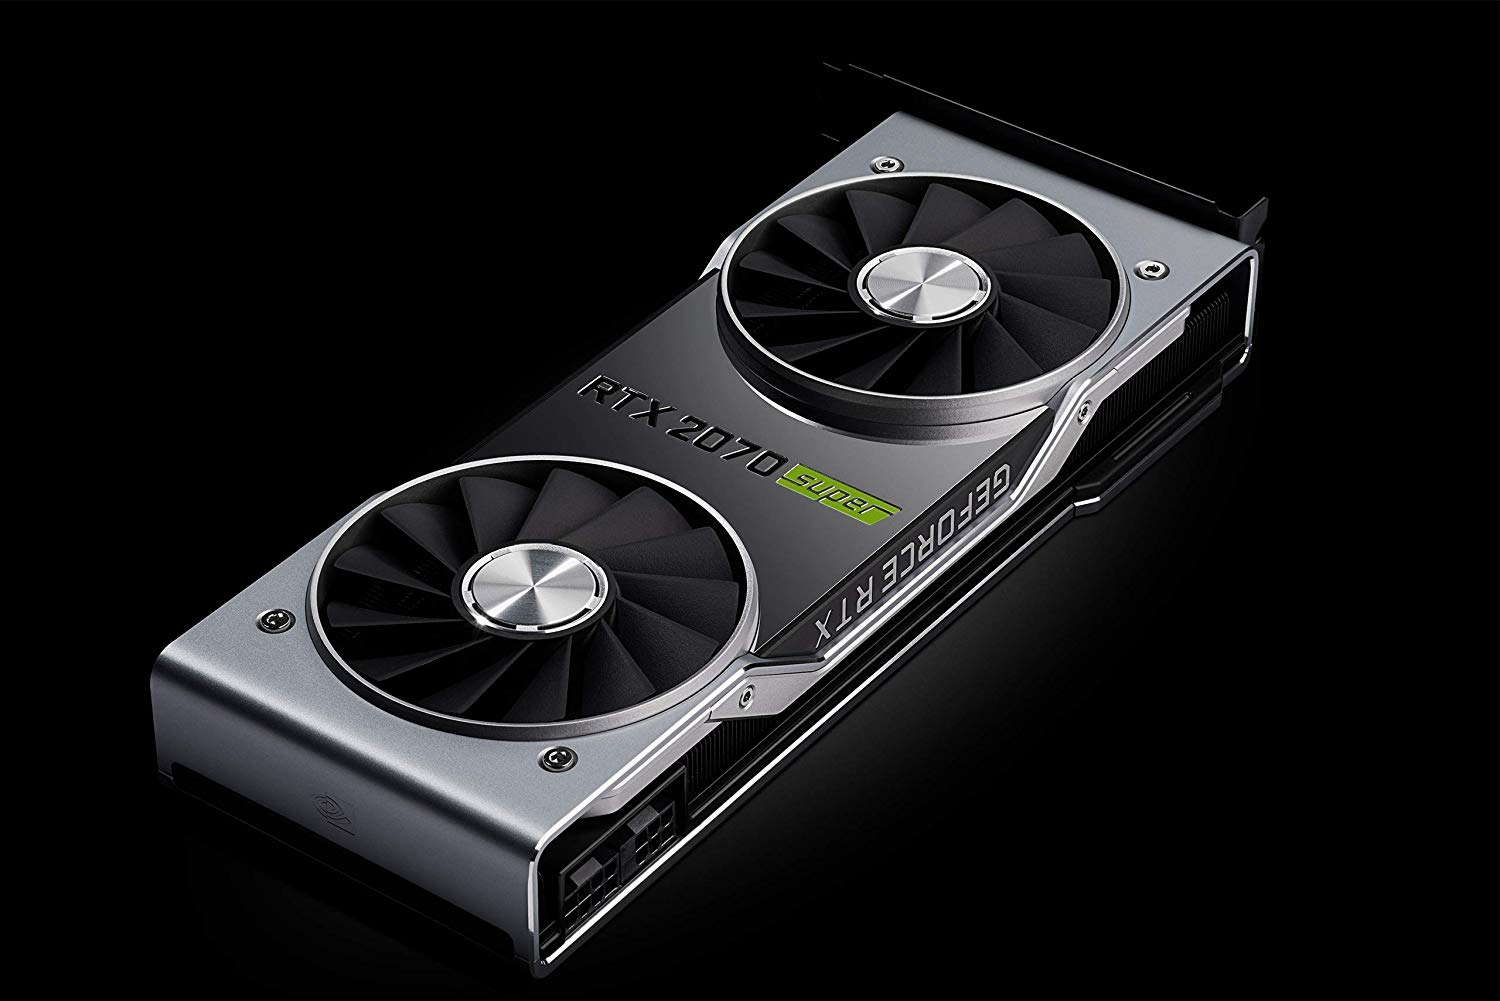 Nvidia RTX 2070 Super Founder's Edition review - Striking